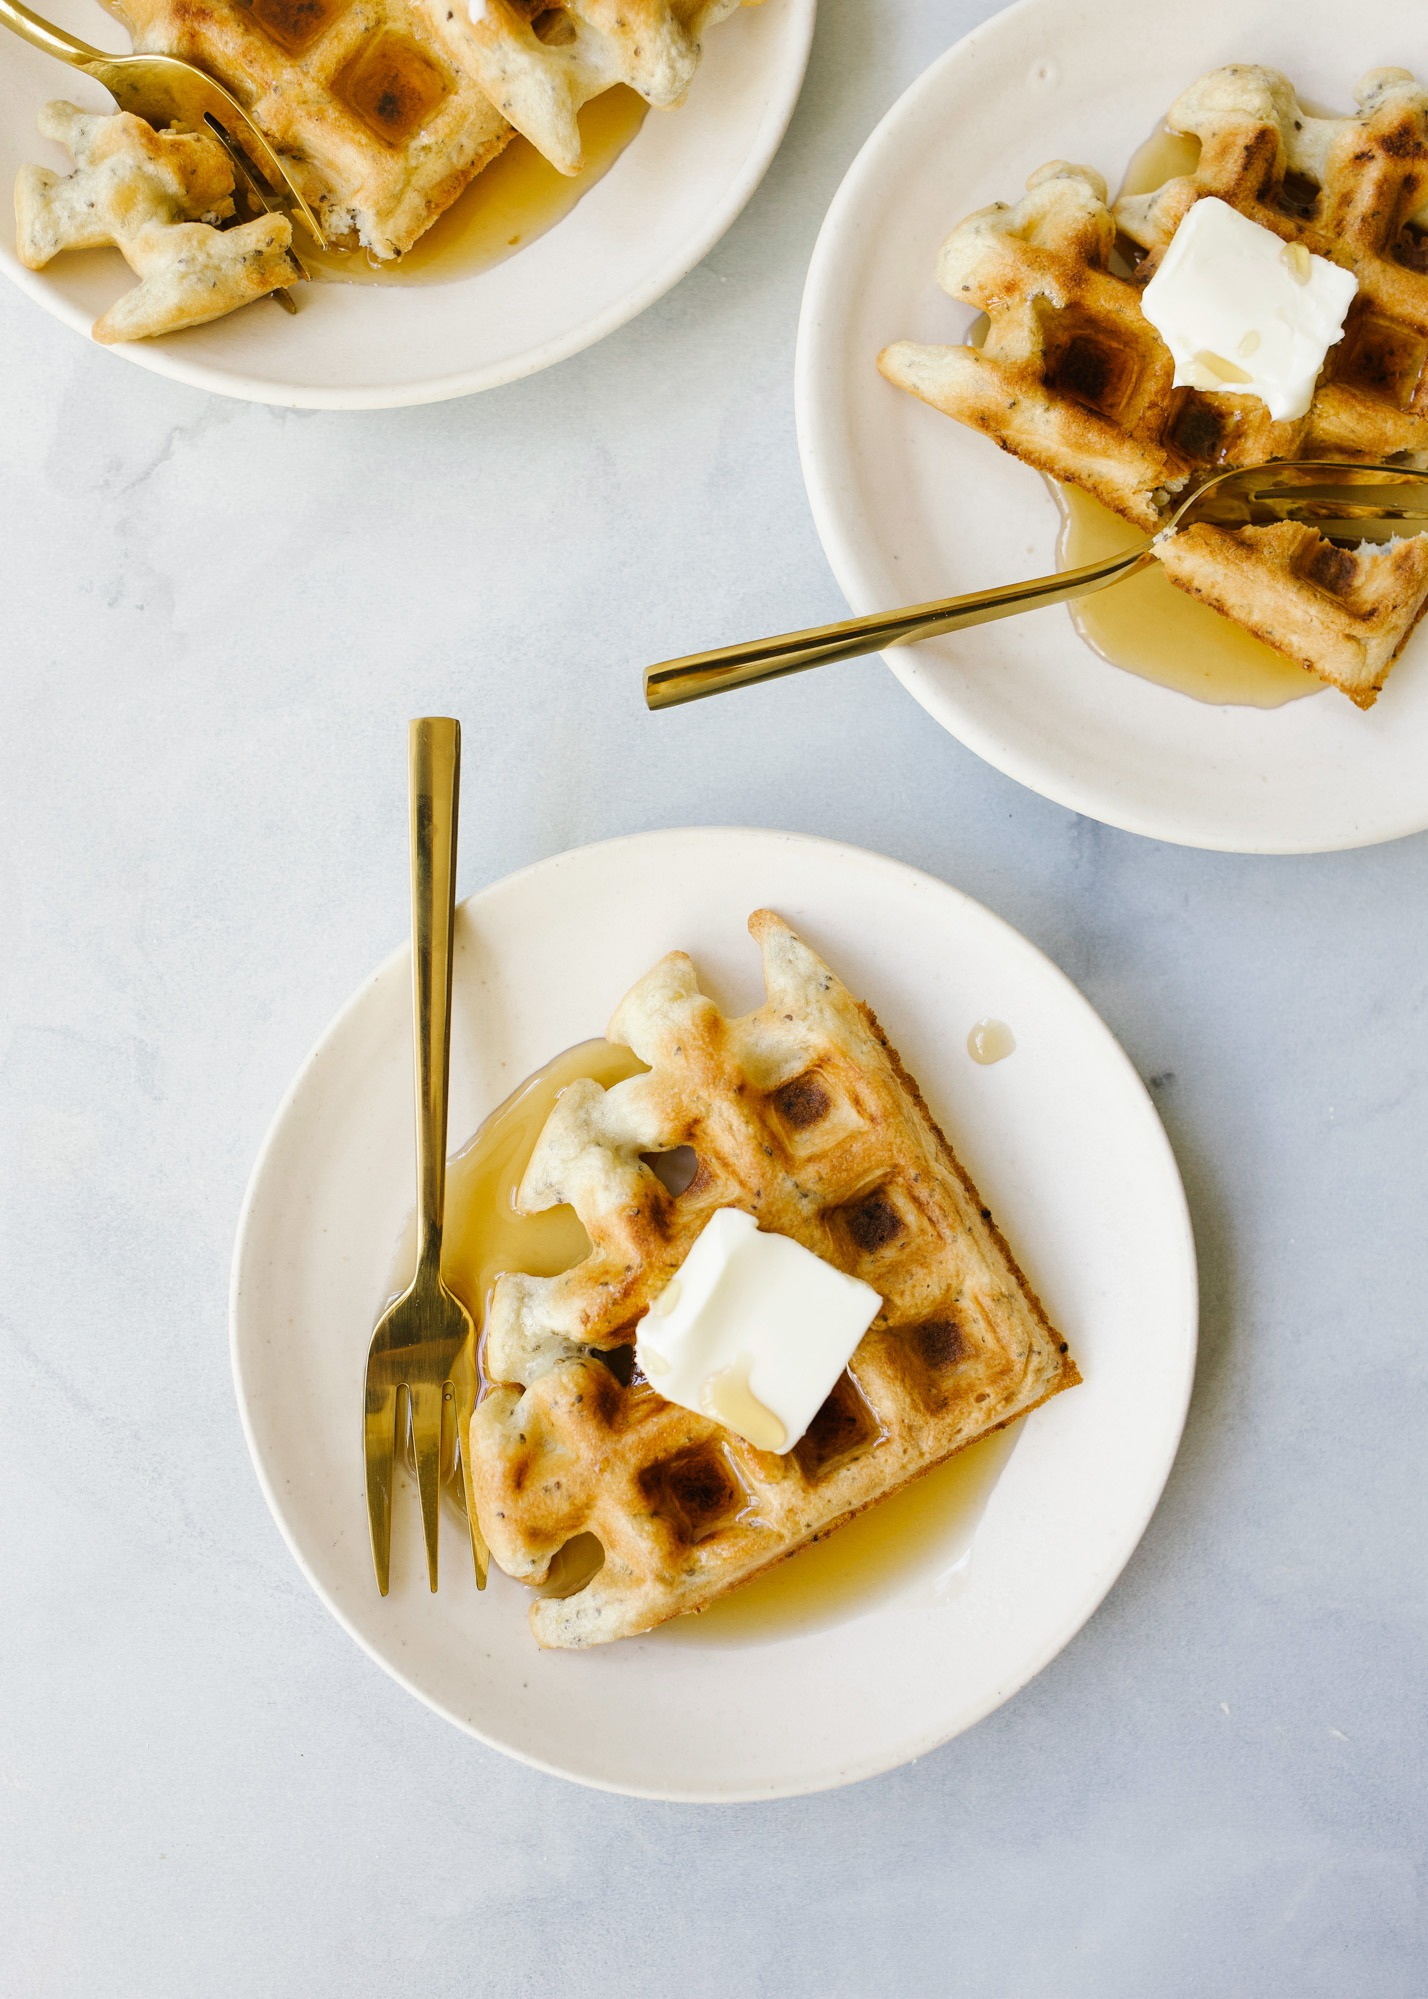 Family Waffle by Wood and Spoon blog. This recipe from Sarah Copeland book Everyday is Saturday is a healthy dairy free waffle made with quinoa and chia seed. This makes 4 thick Belgian style waffles and is best served with maple syrup or a healthy portion of fresh fruit and yogurt. Read more about these make ahead and reheat breakfast treats on thewoodandspoon.com